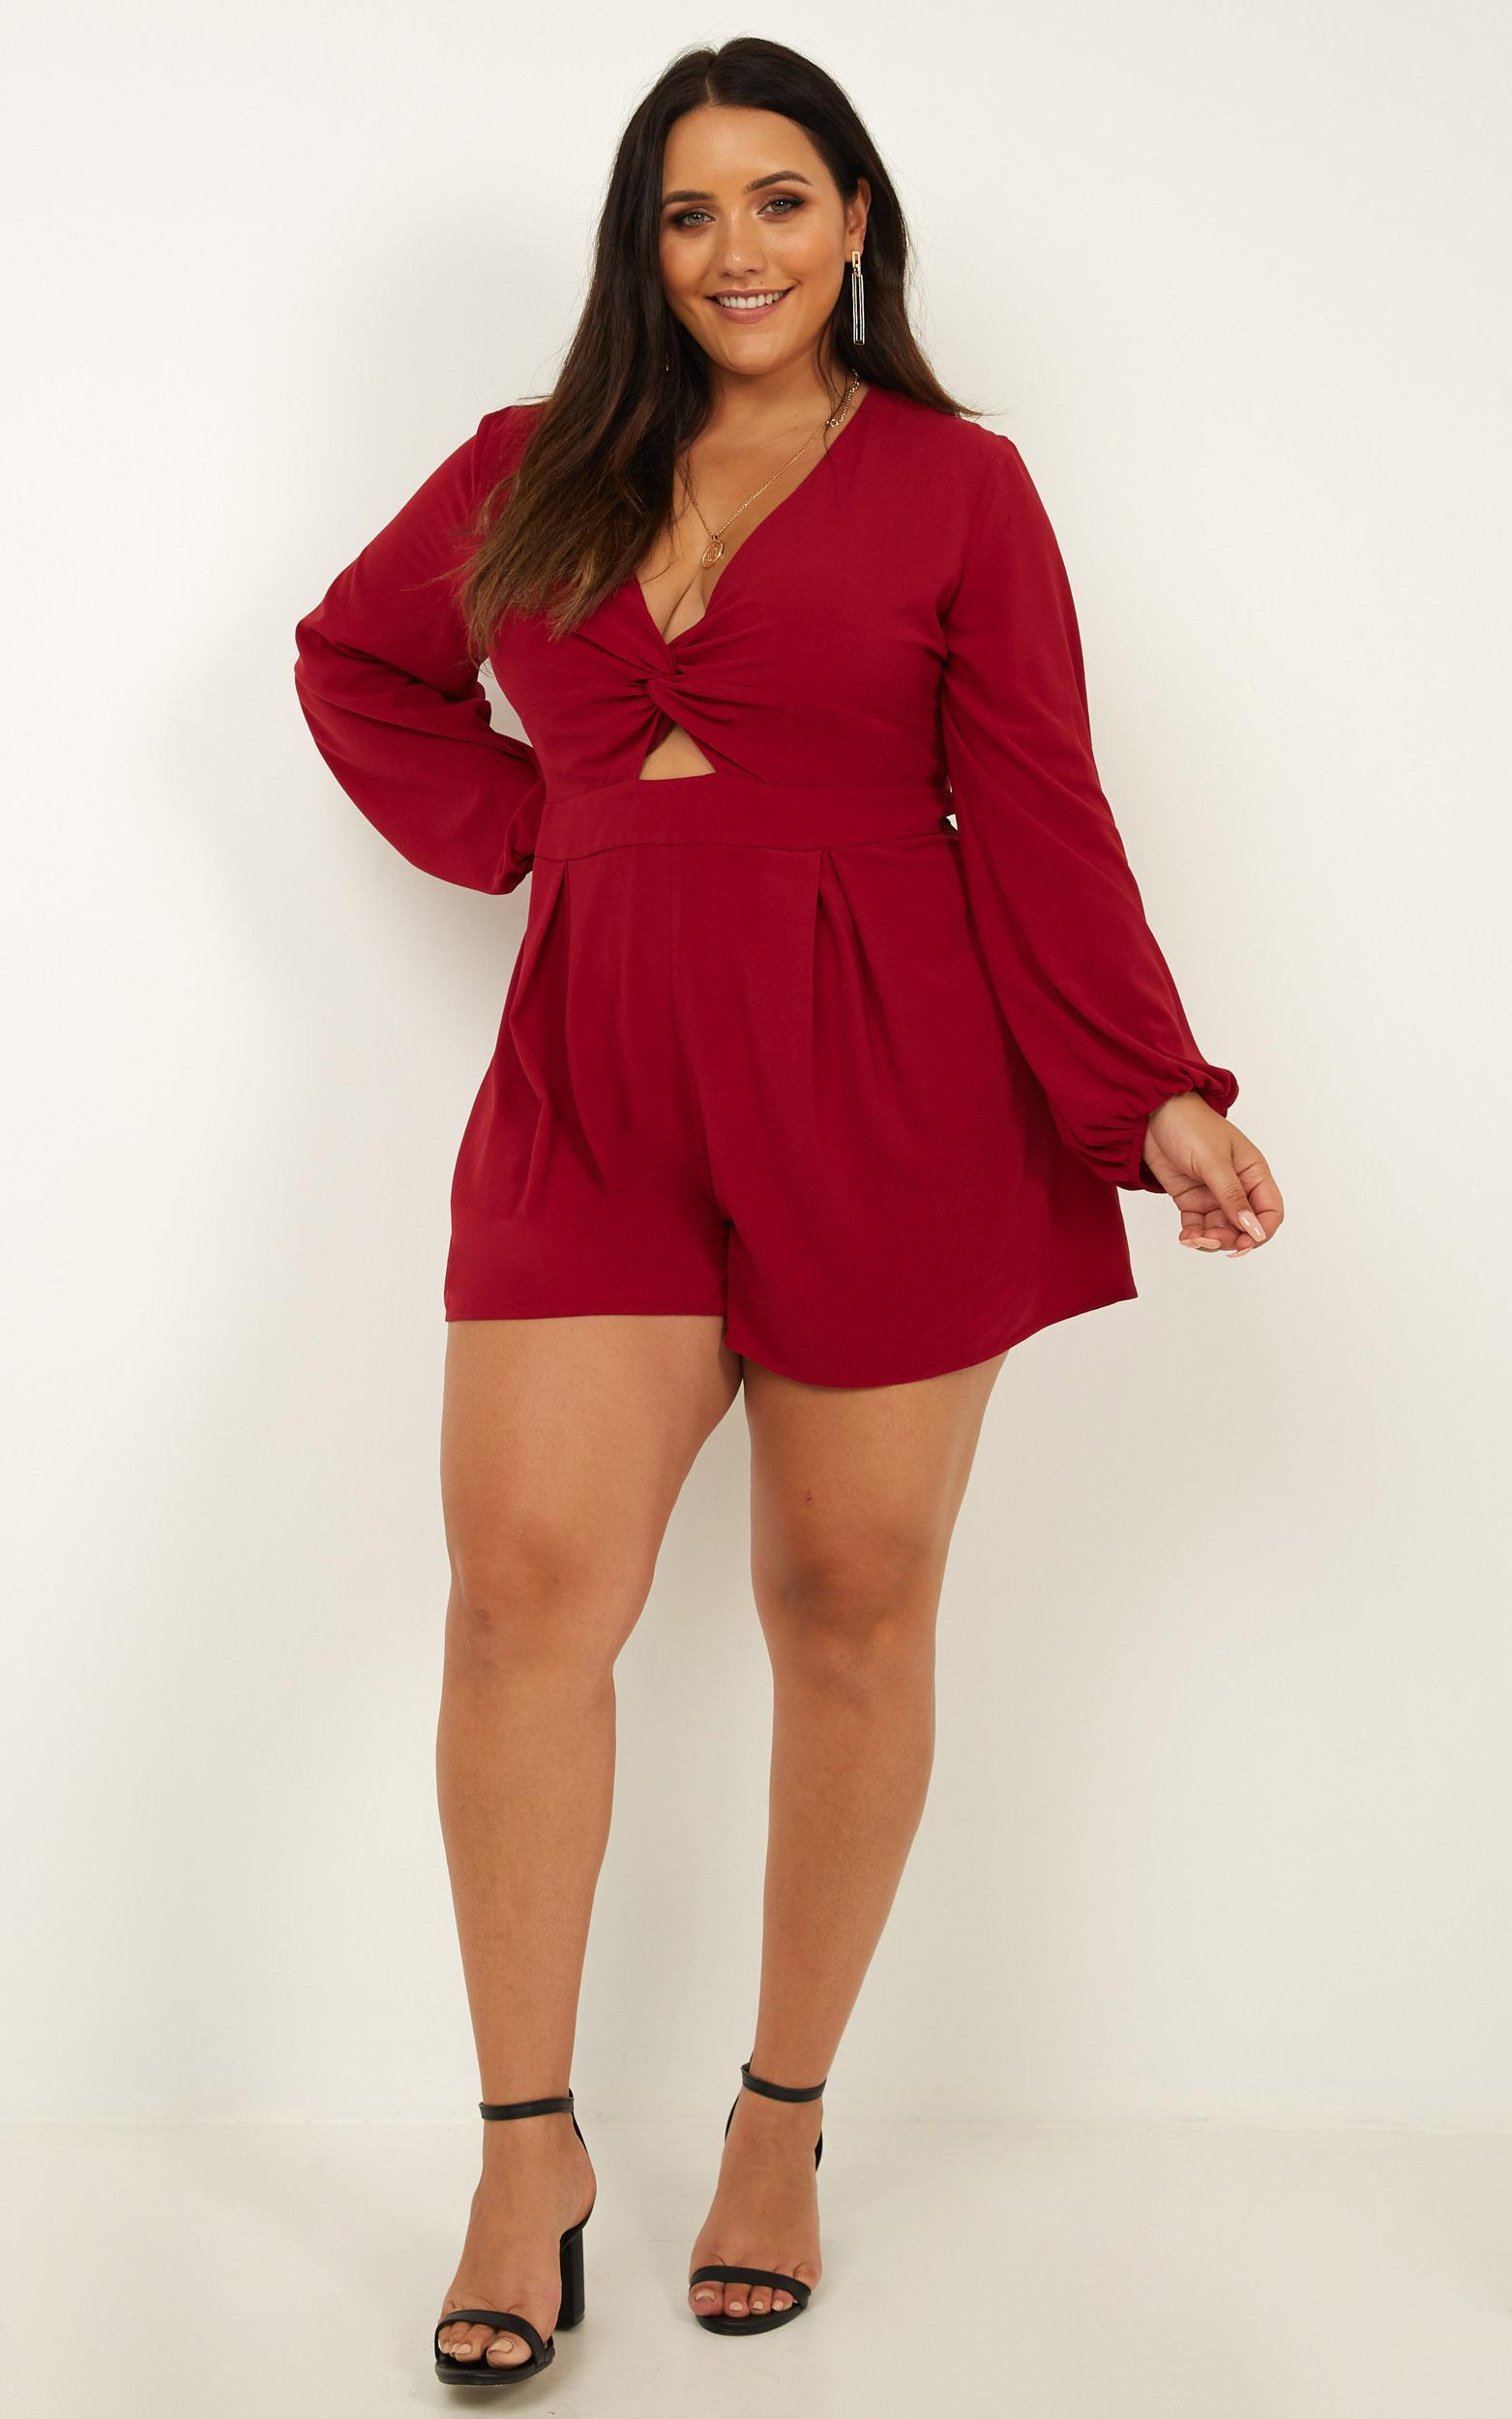 Tiny Dancer Playsuit In Wine - 4 (XXS), Wine, hi-res image number null